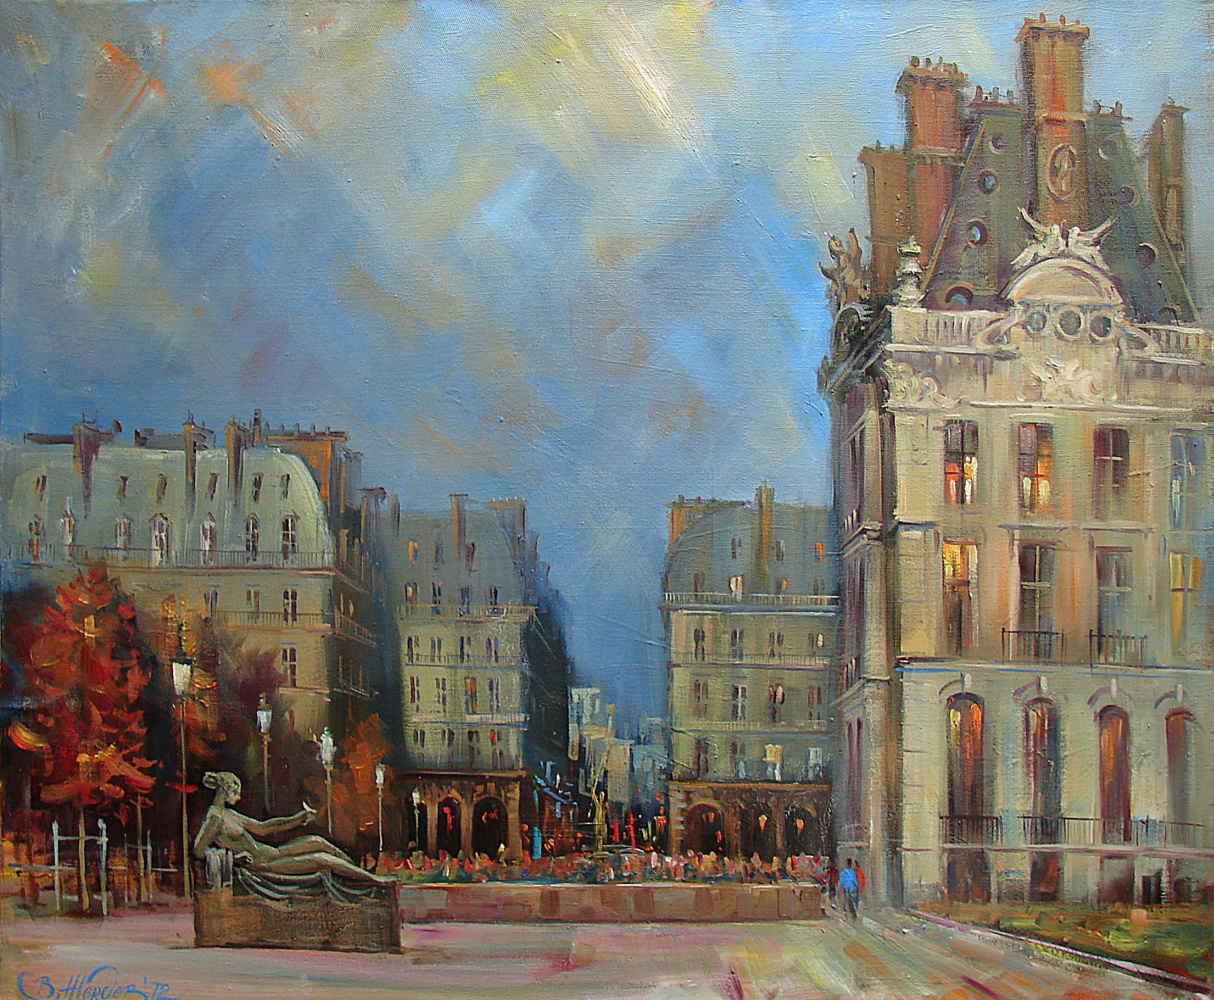 Виталий Викторович Жердев. Paris. Le jardin des Tuileries. By Vitaliy Zherdev. Oil on canvas. 85 х 70 сm